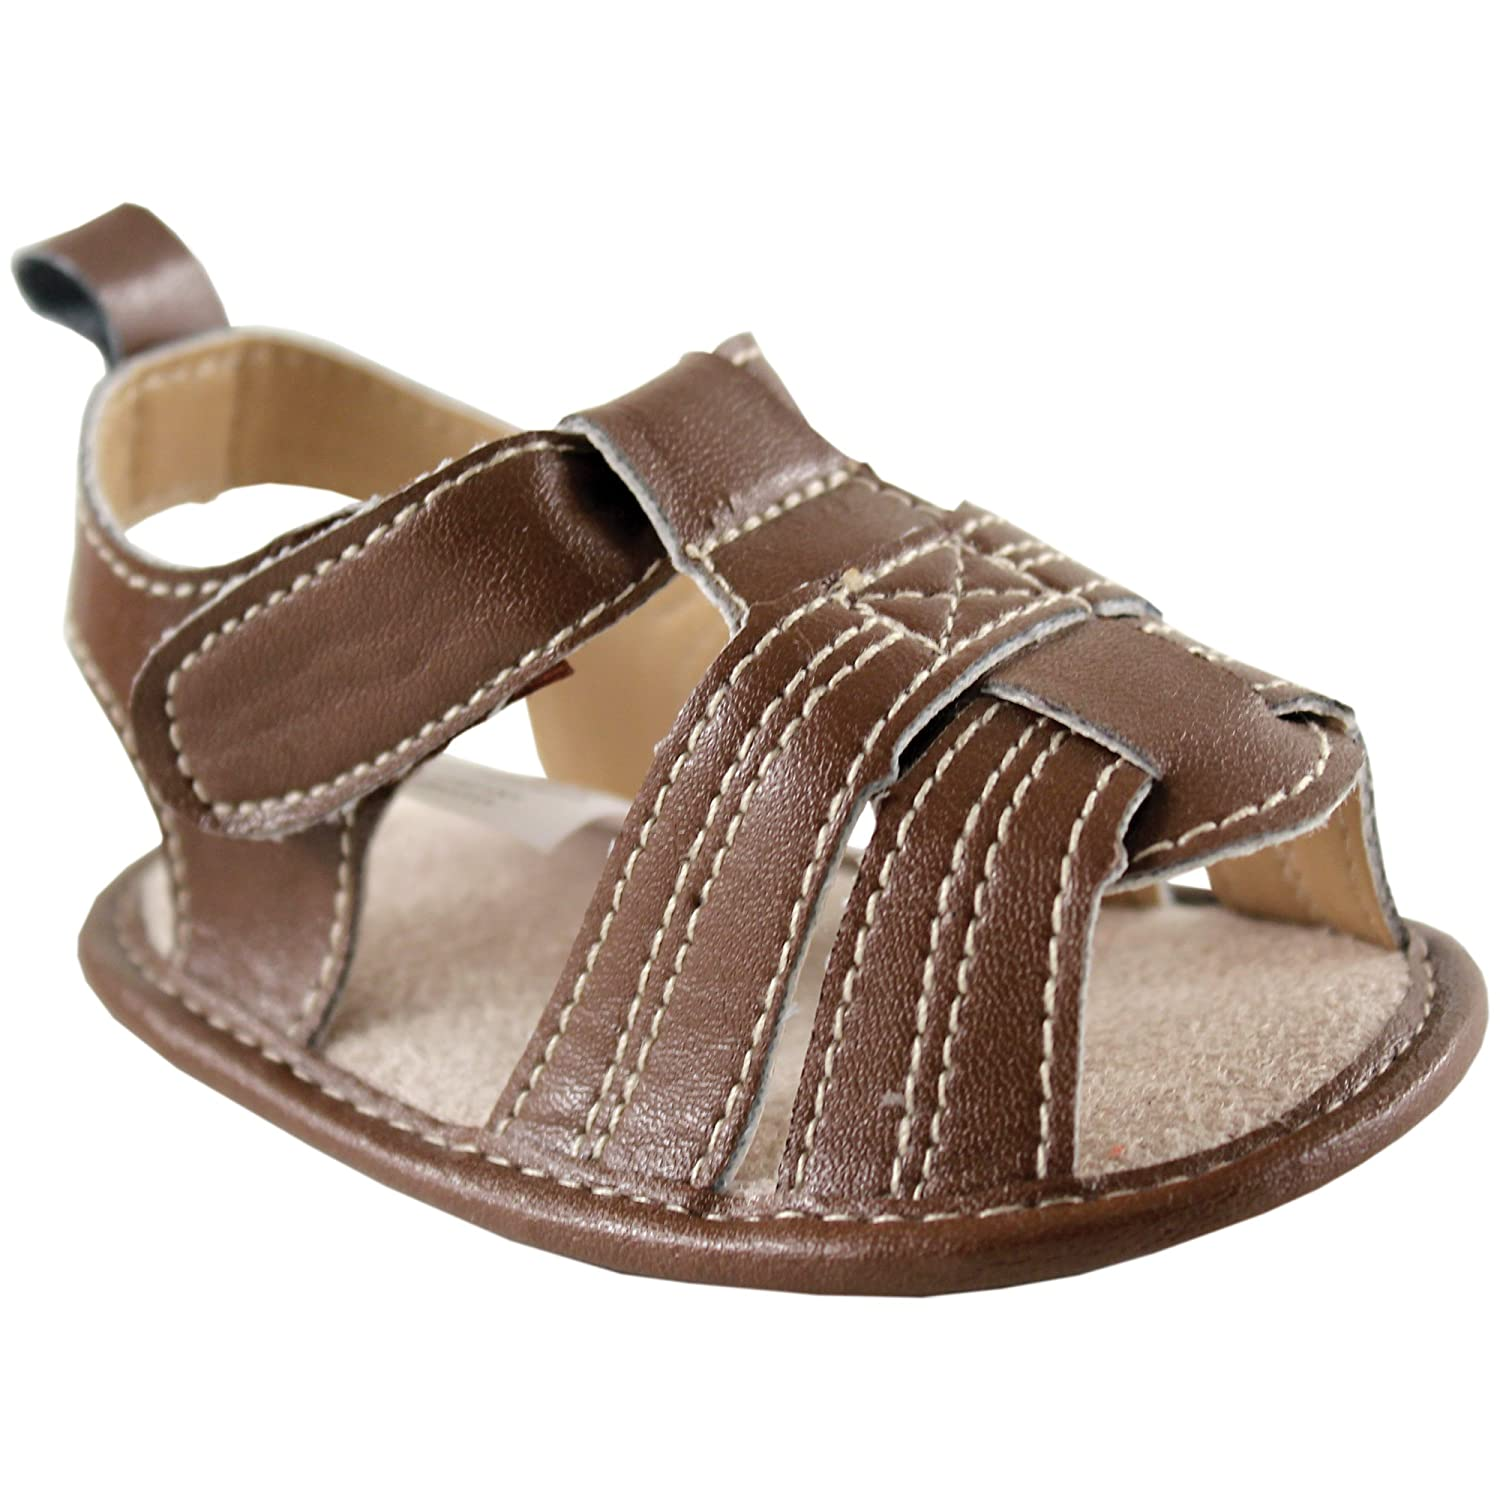 Luvable Friends Boy's Casual Sandal T Strap Sandal Boy' s Casual Sandal - K